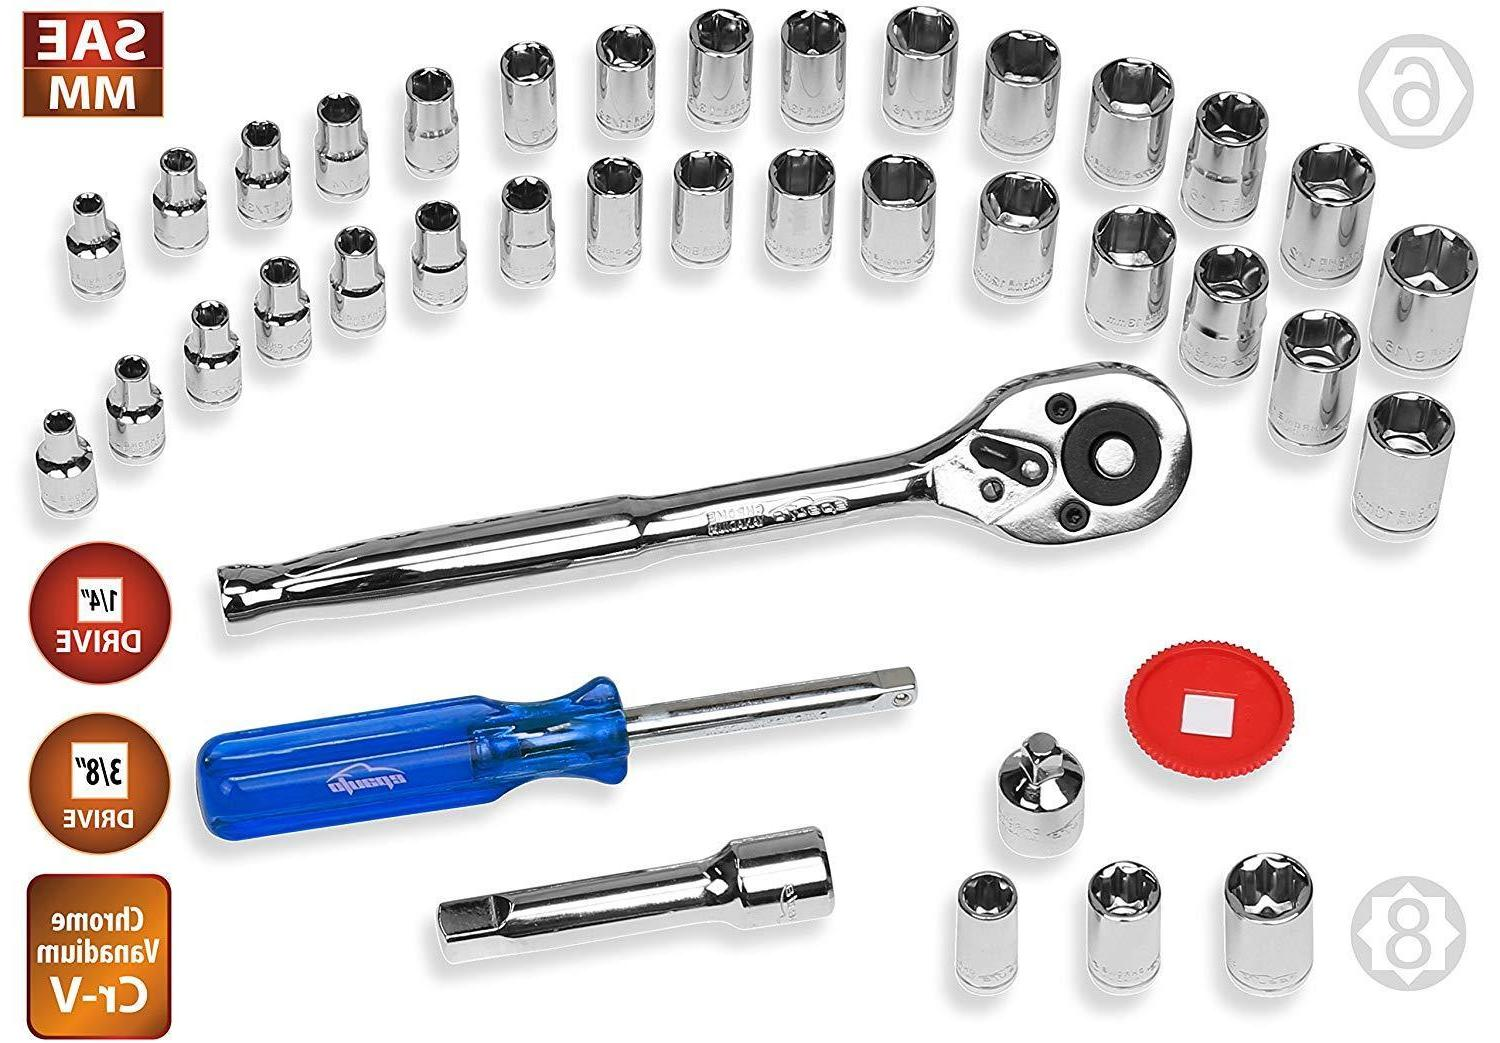 40 Pieces - 1/4-Inch 3/8-Inch Socket Ratchet